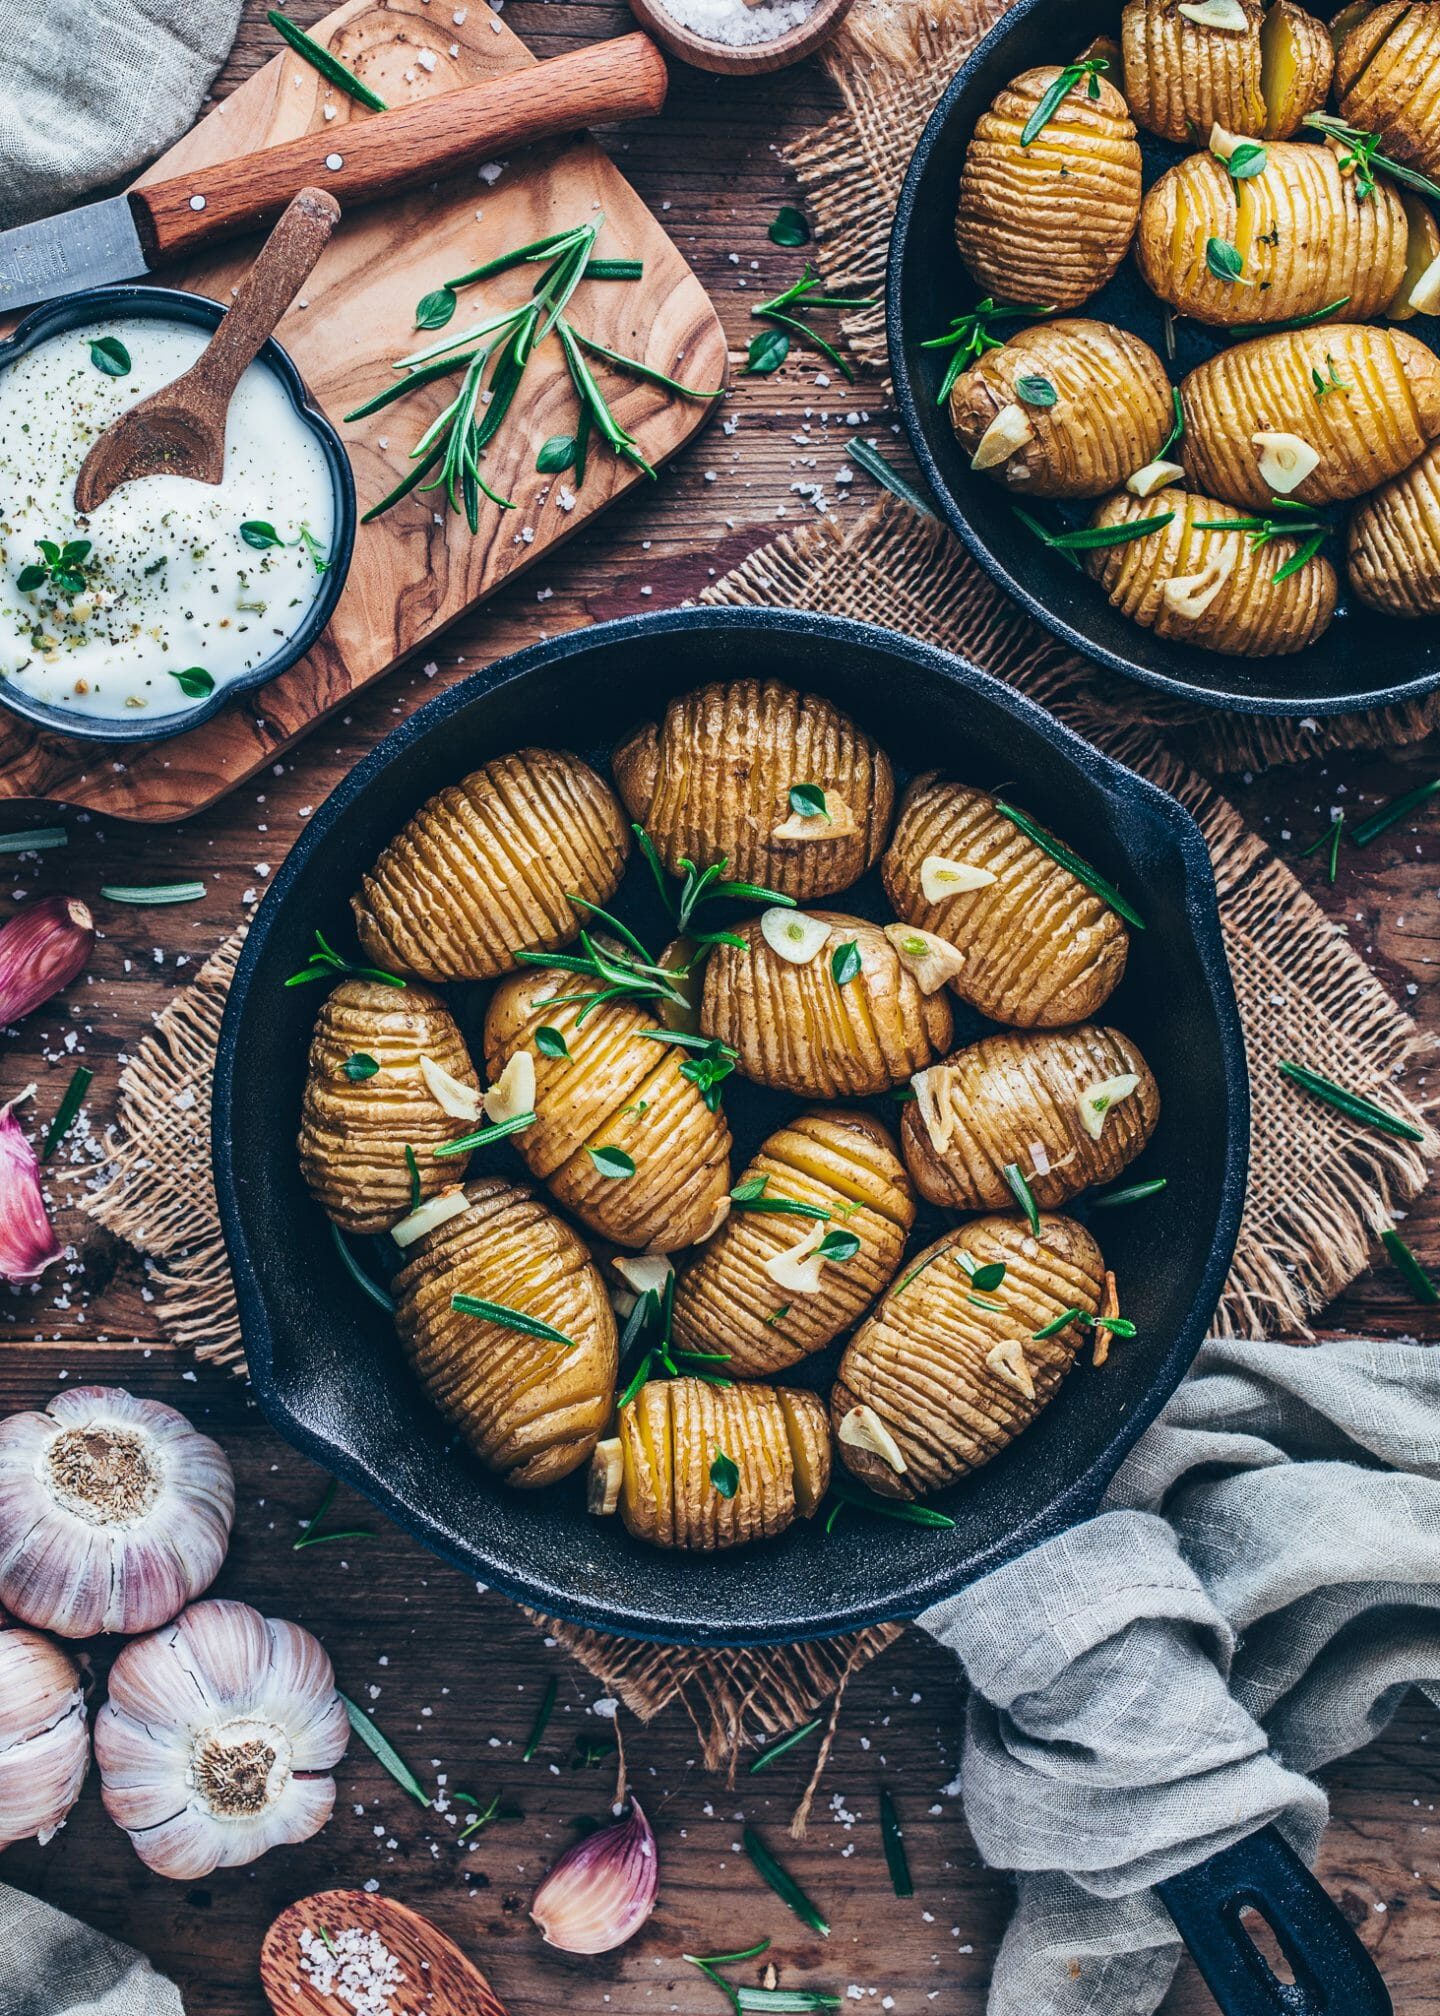 Crispy baked Hasselback Potatoes with garlic, sea salt and rosemary